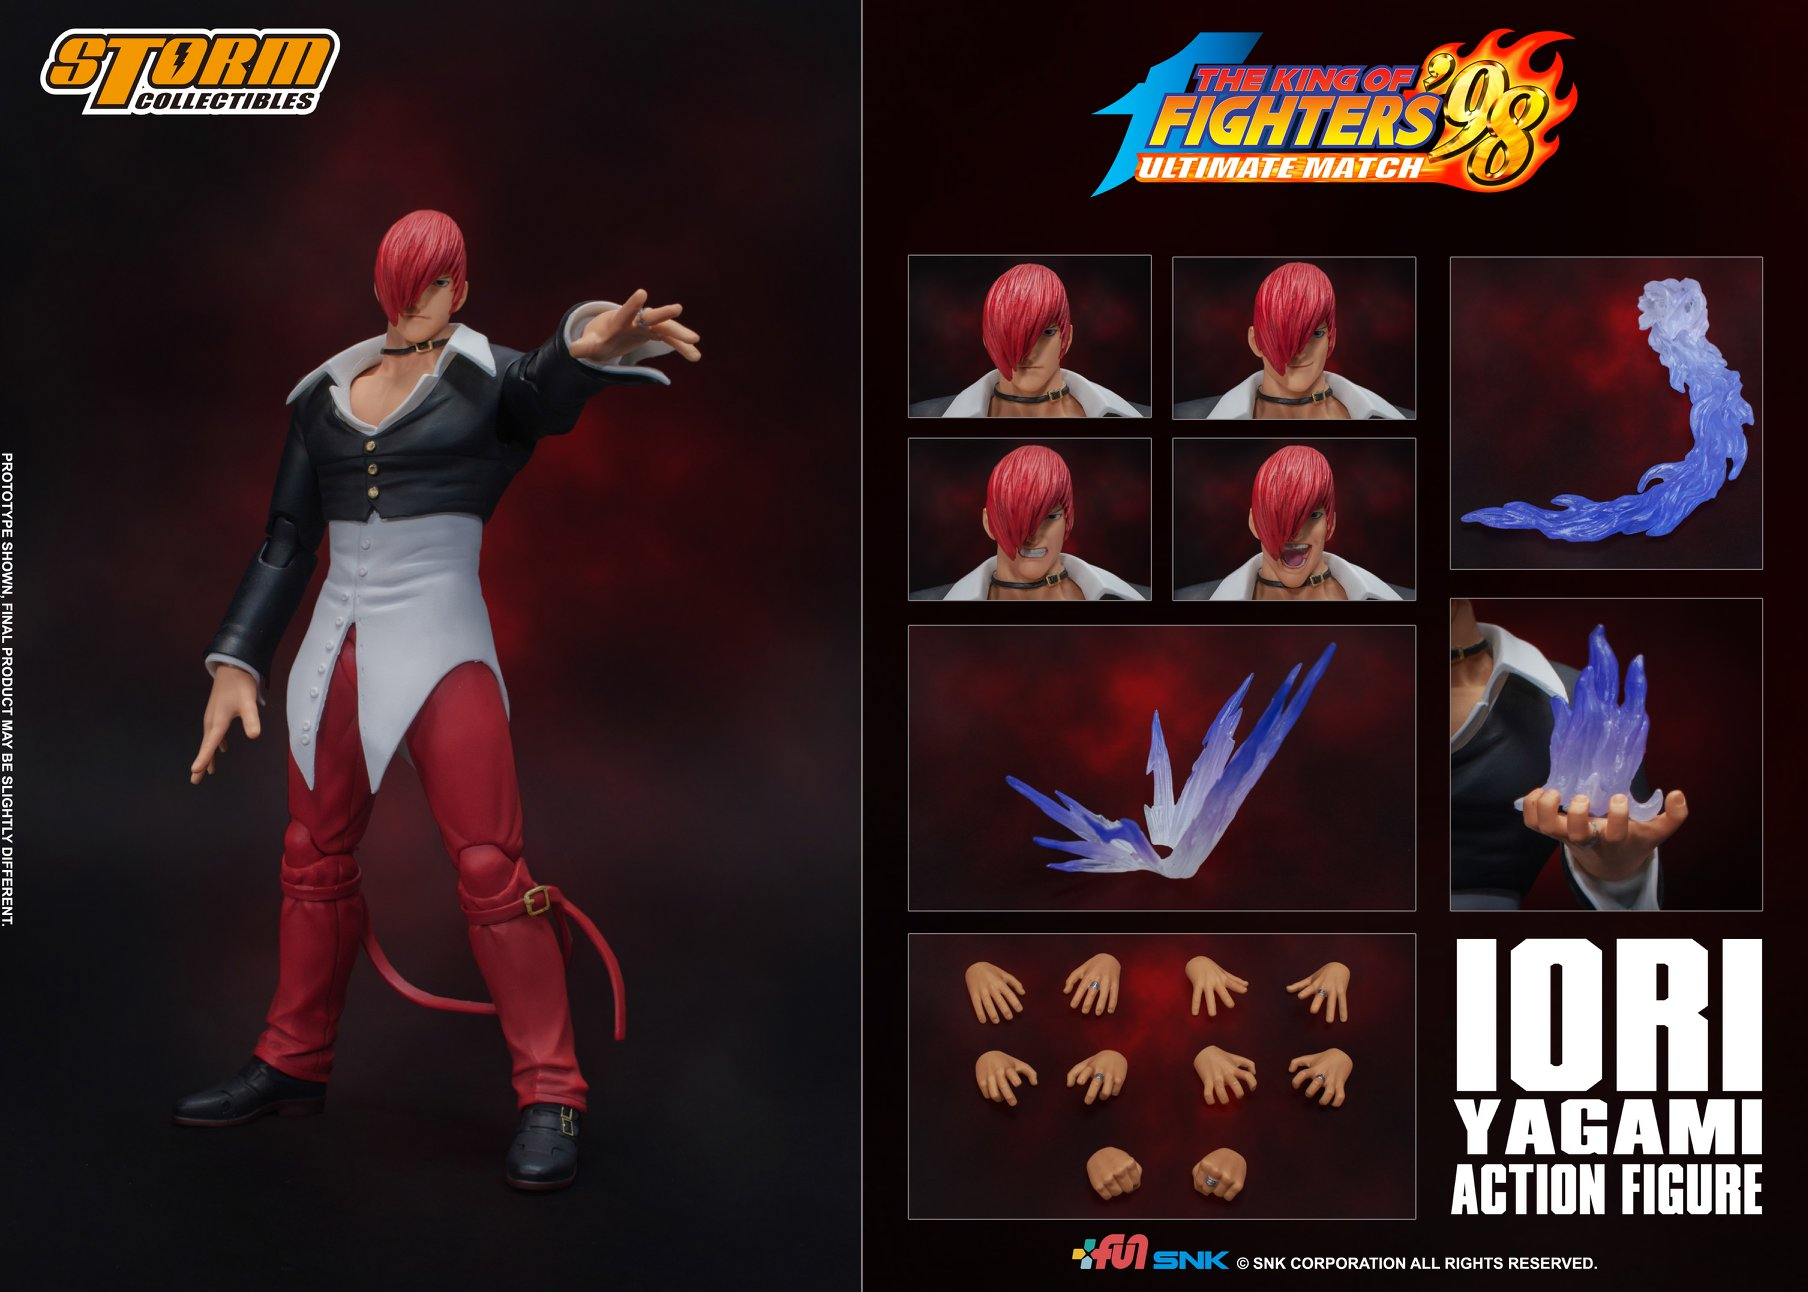 Iori Yagrami (King of Fighters 98) da Storm Collectibles